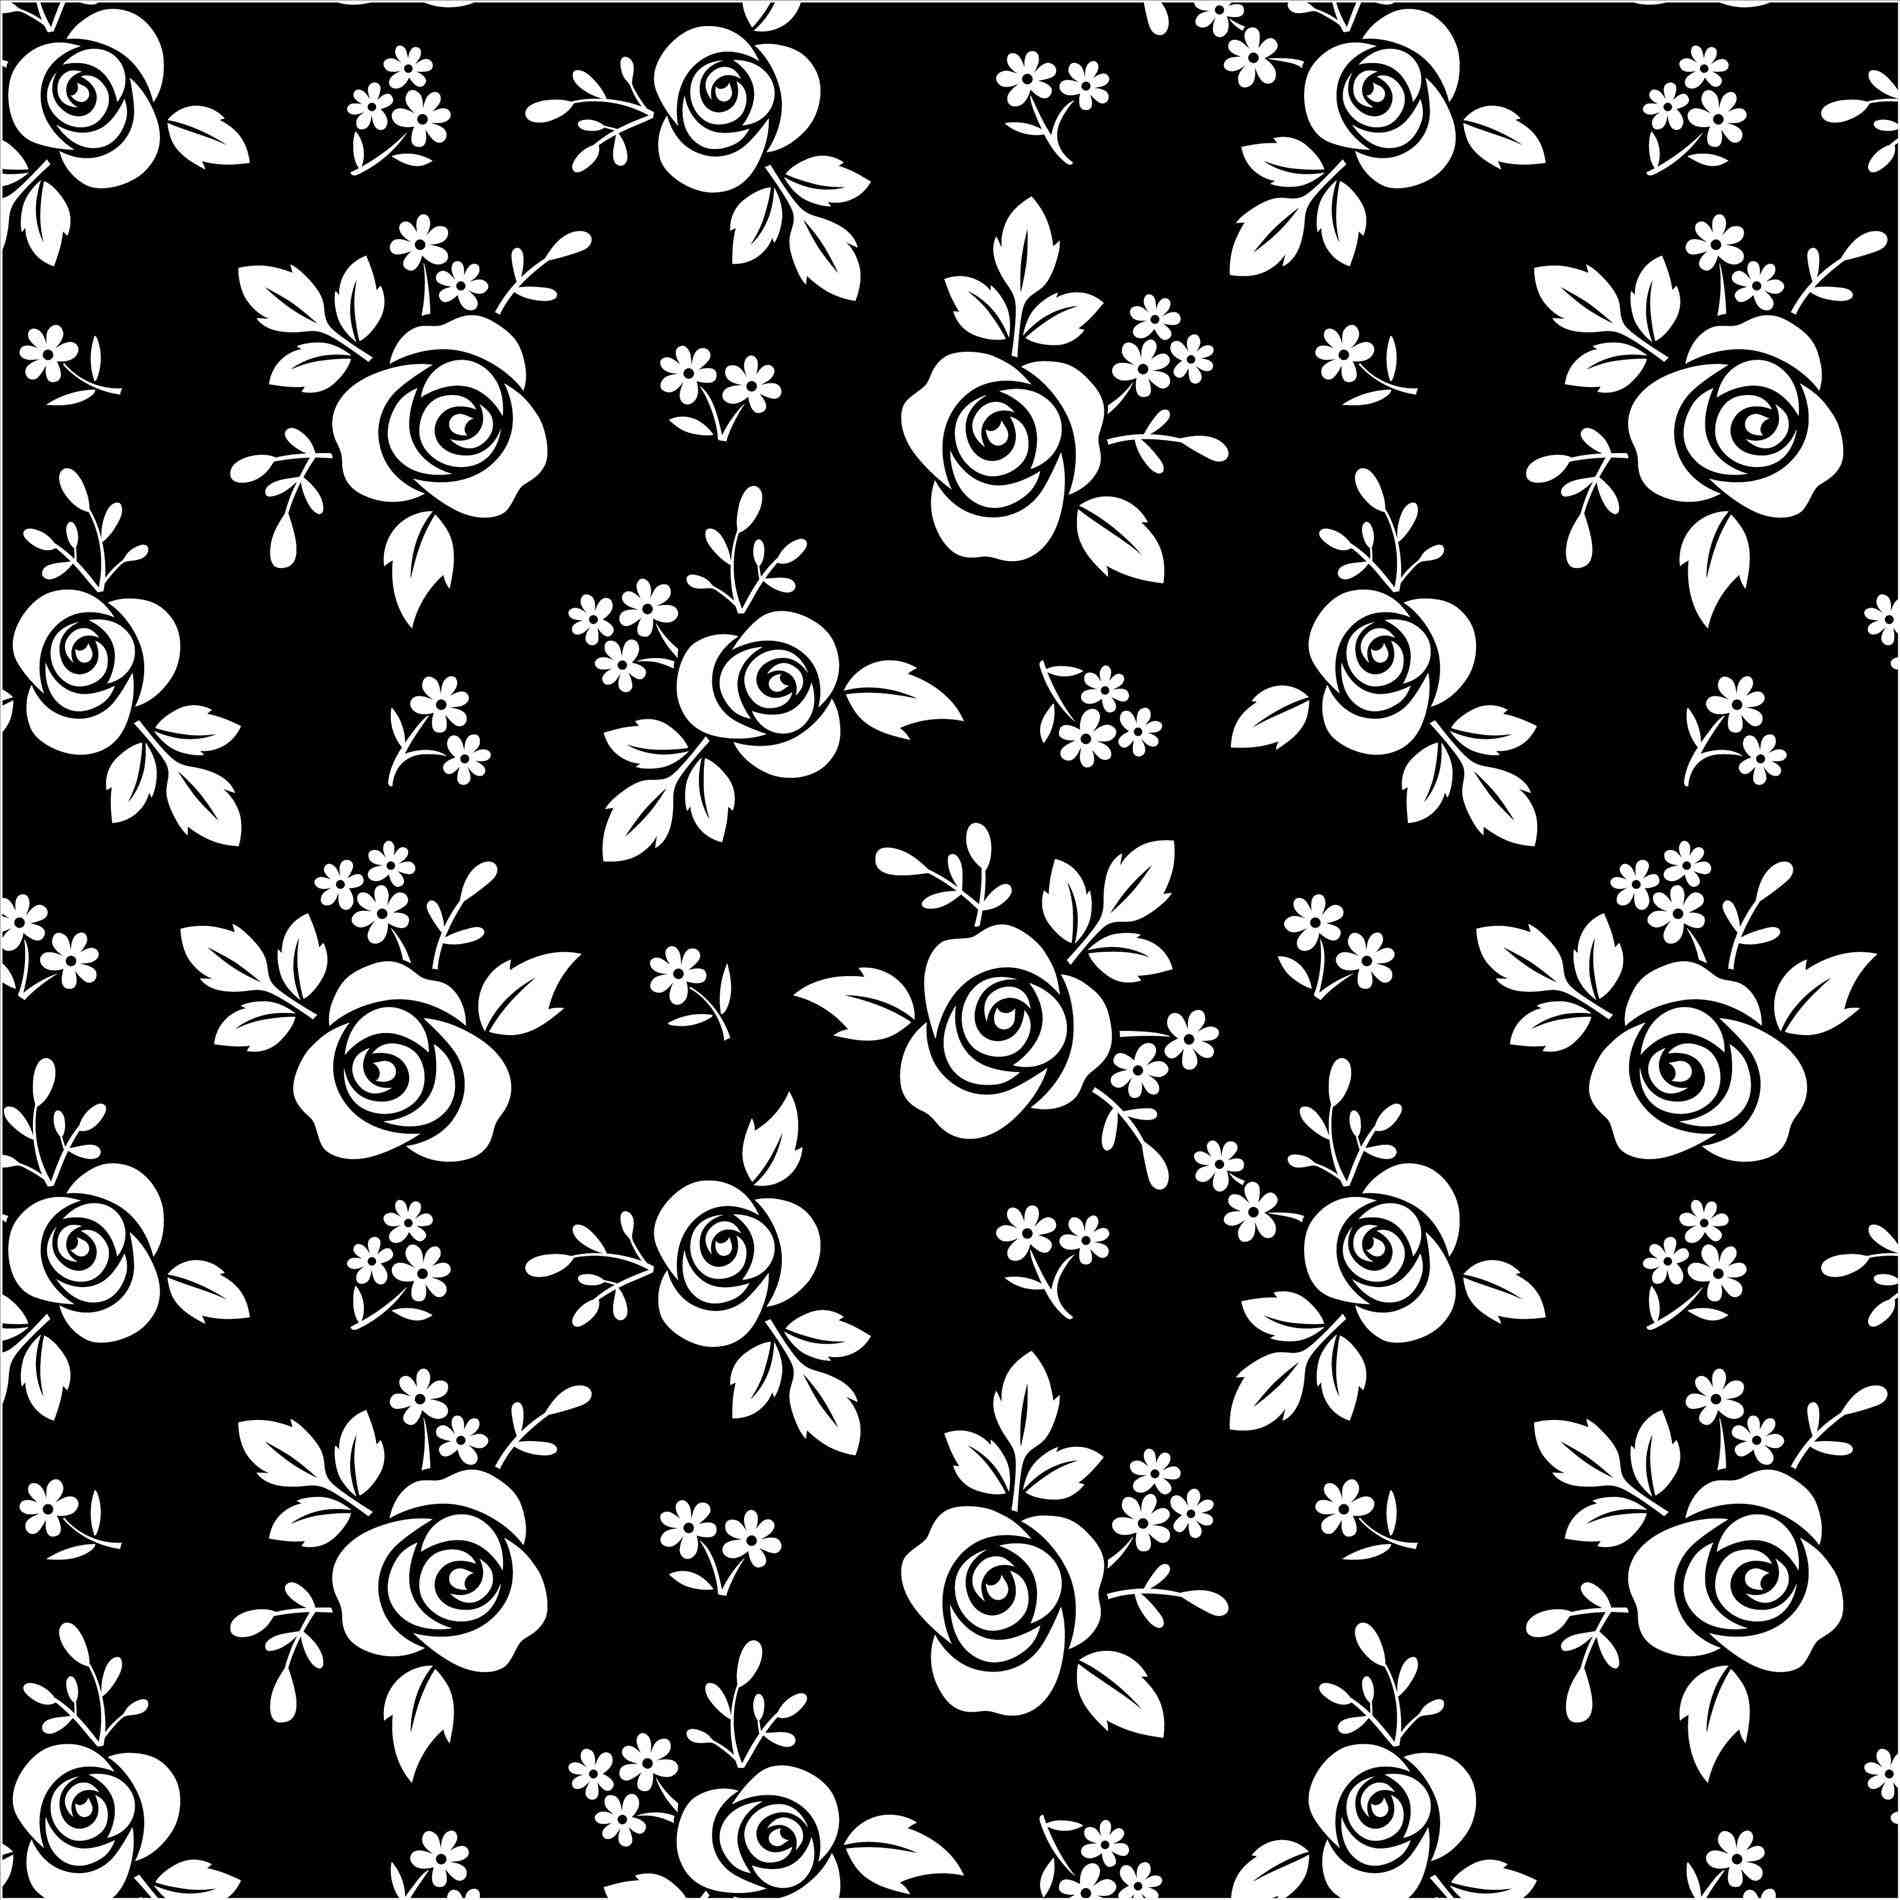 1900x1900 Cool Designs Black And White On Paper